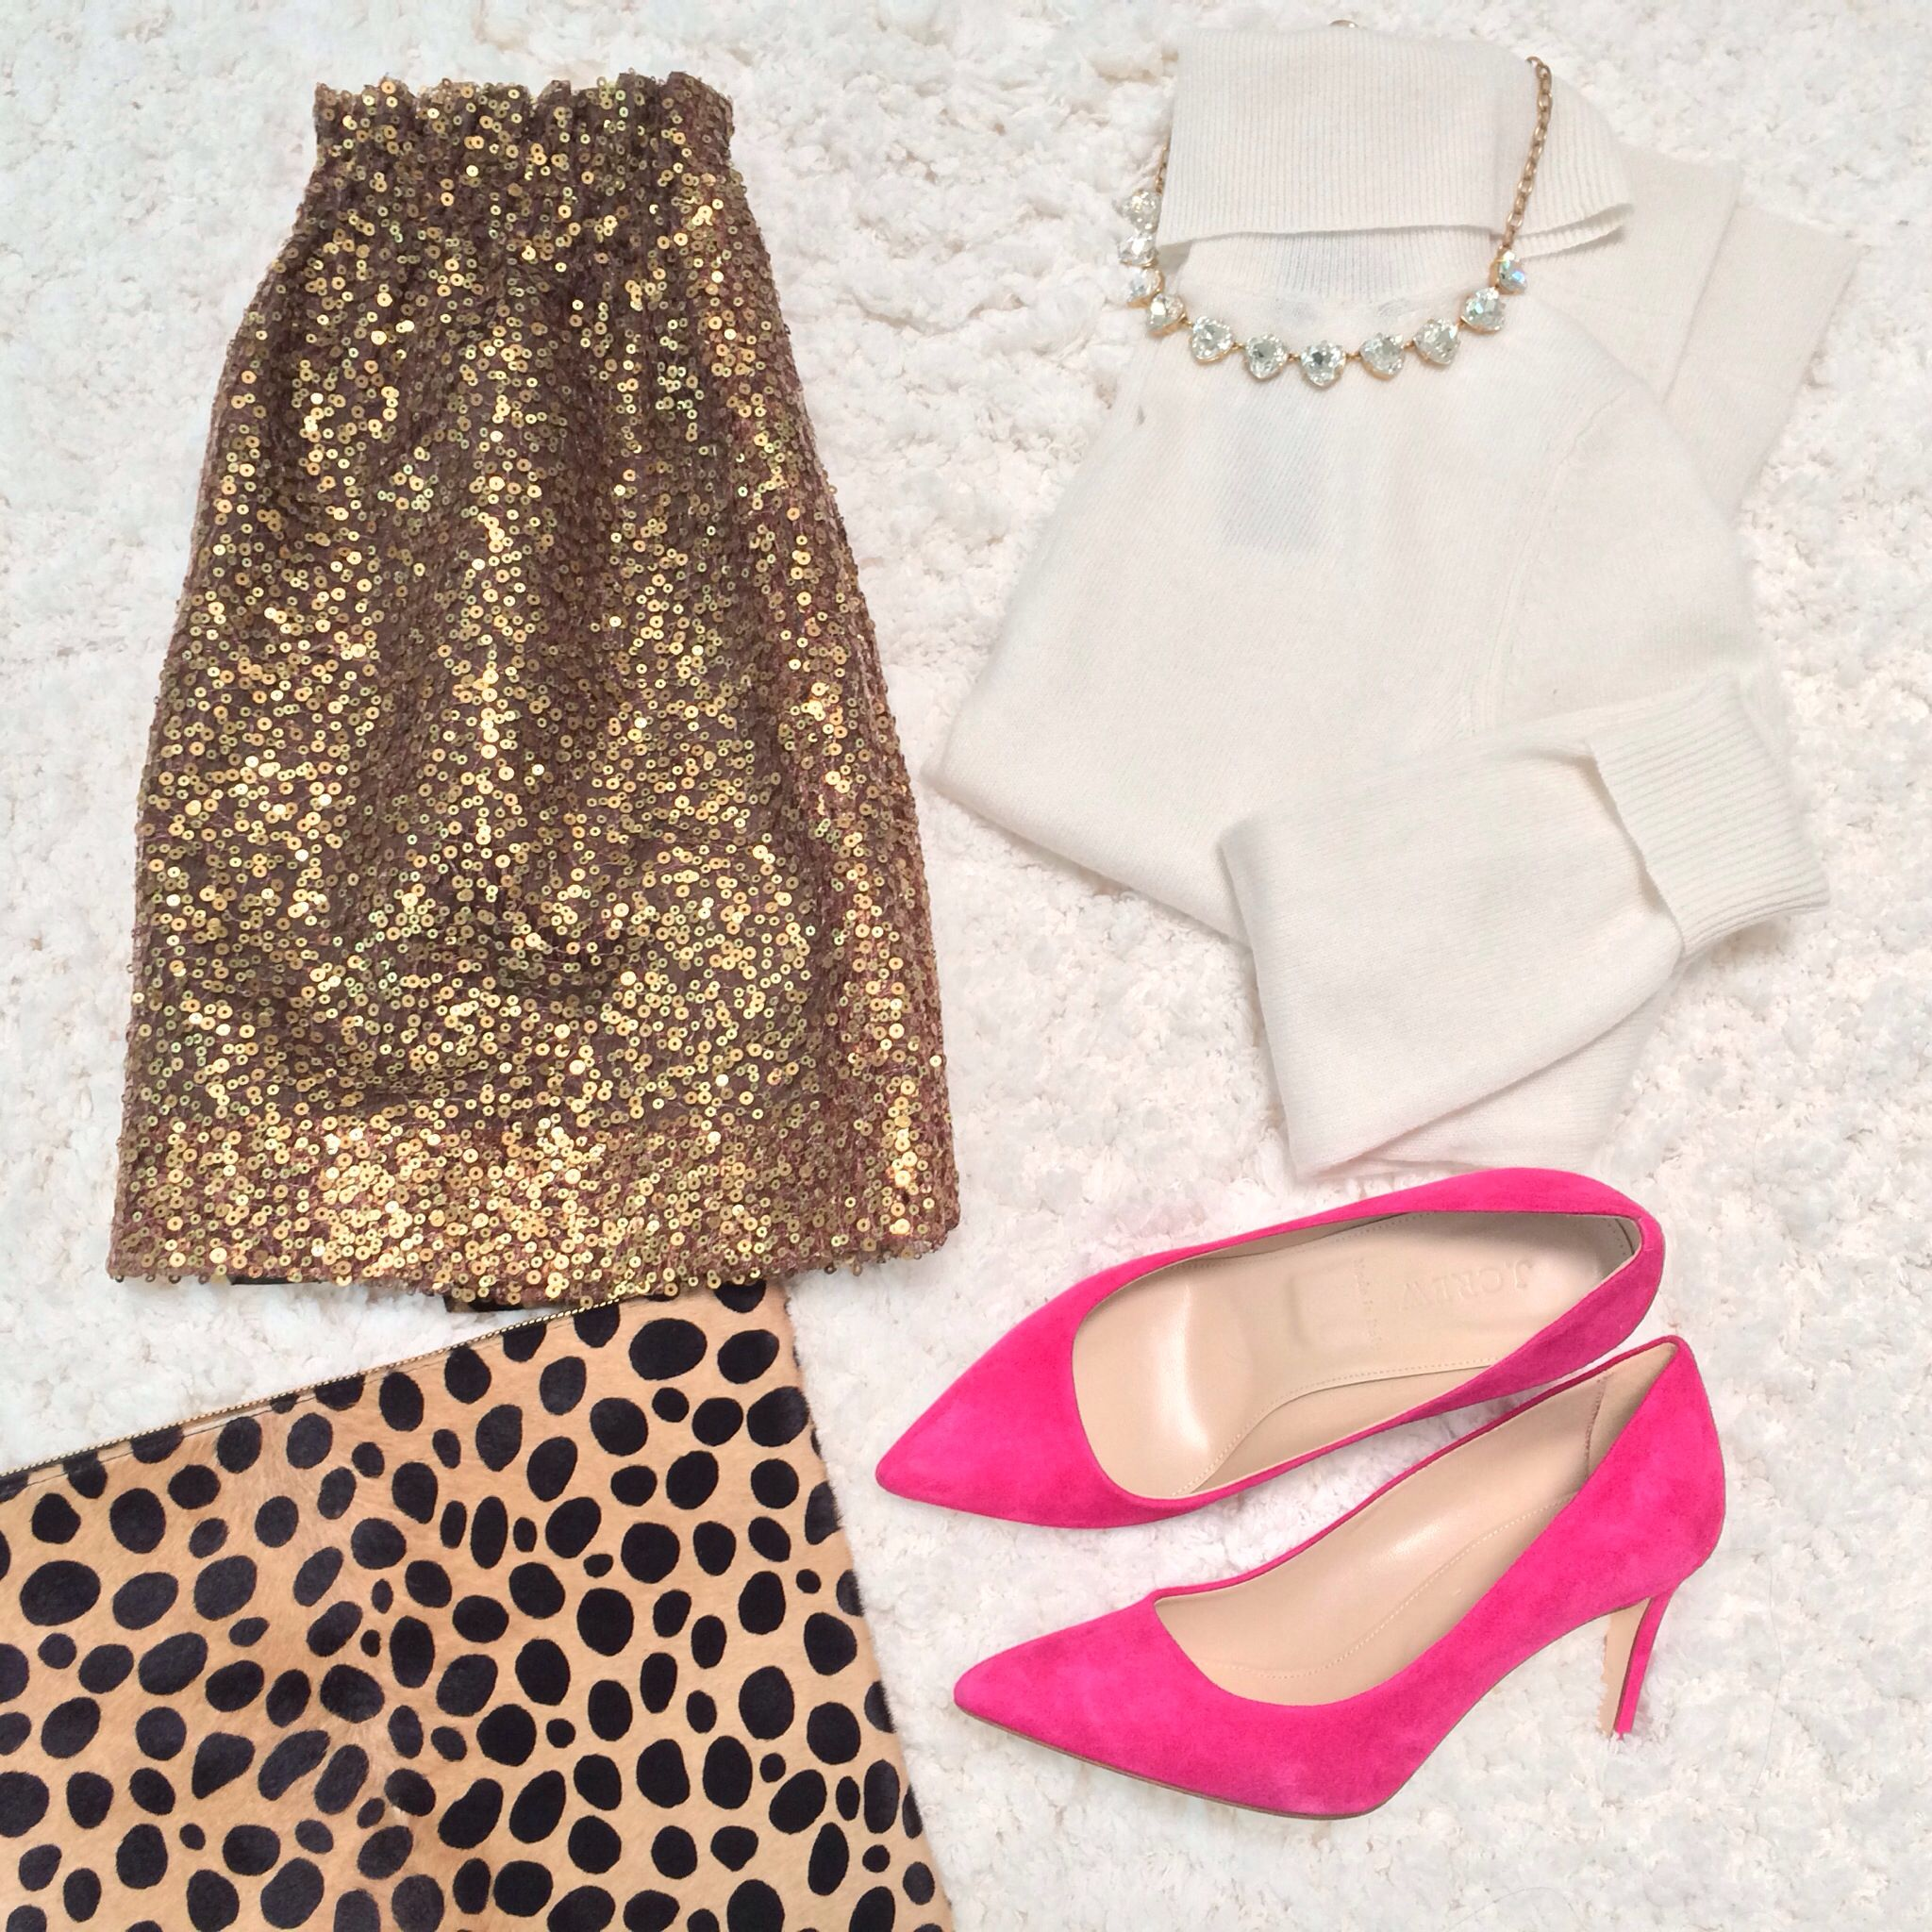 If you re looking for the perfect outfit for your New Year s Eve Party  we ve got a lot of beautifully sparkly options here for you. 620002211